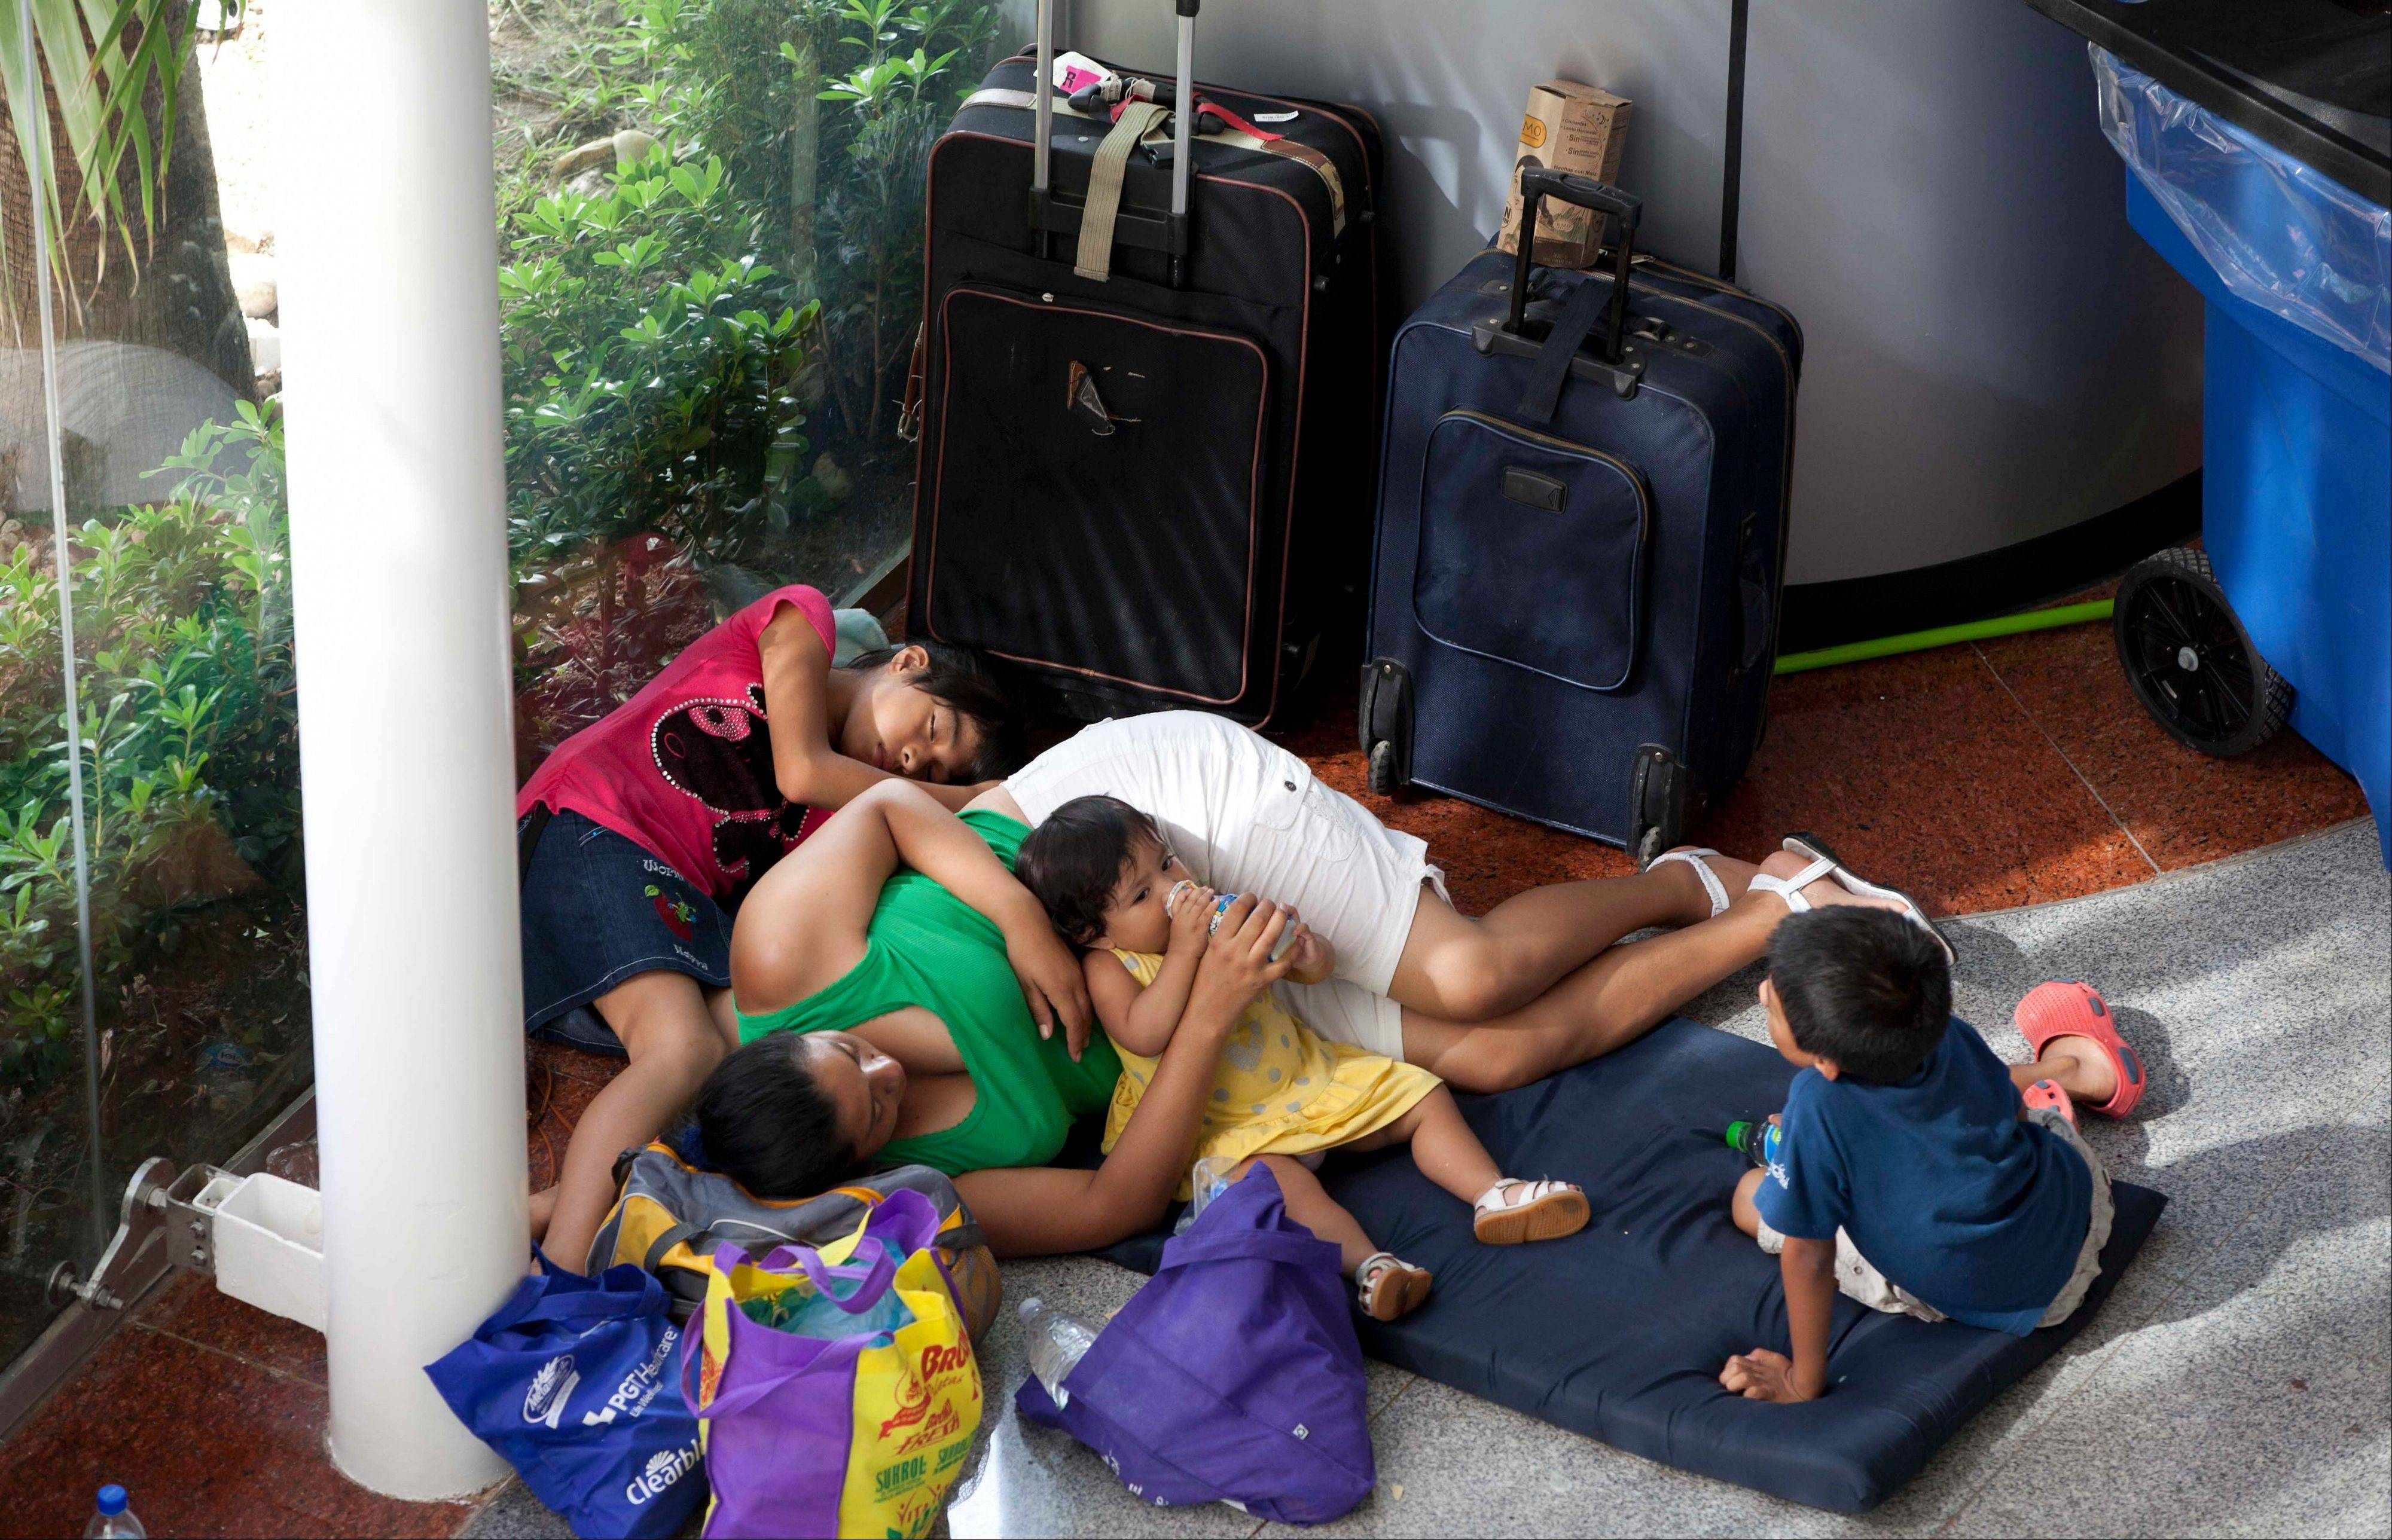 A family rests in a shelter as they wait to be ferried out by air, south of Acapulco, in Punta Diamante, Mexico, Wednesday, Sept. 18, 2013.